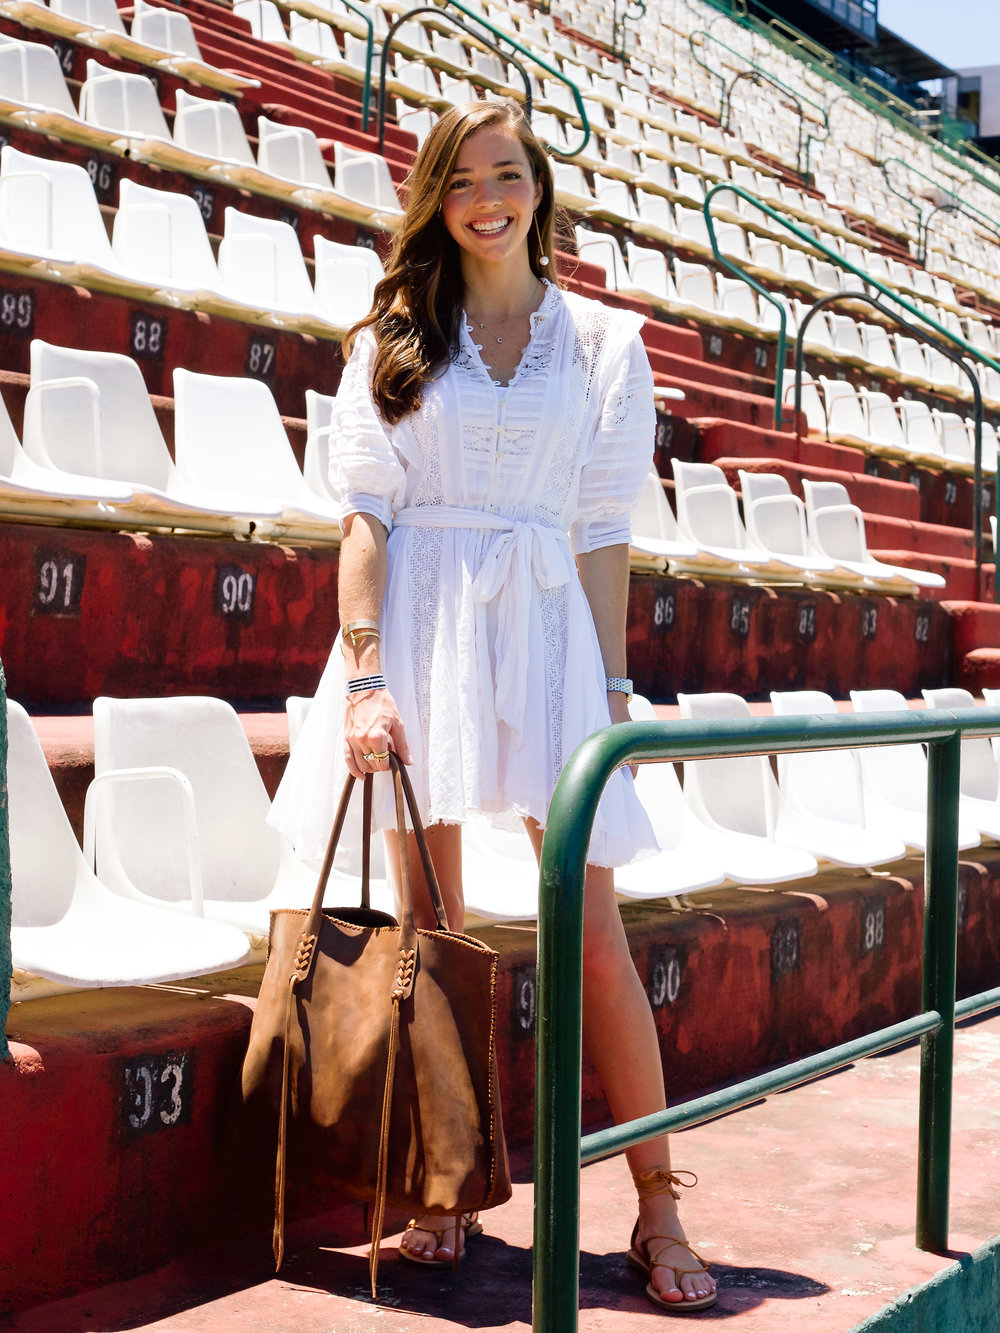 LCB STYLE FASHION BLOGGER ARGENTINE OPEN POLO-28 3.jpg